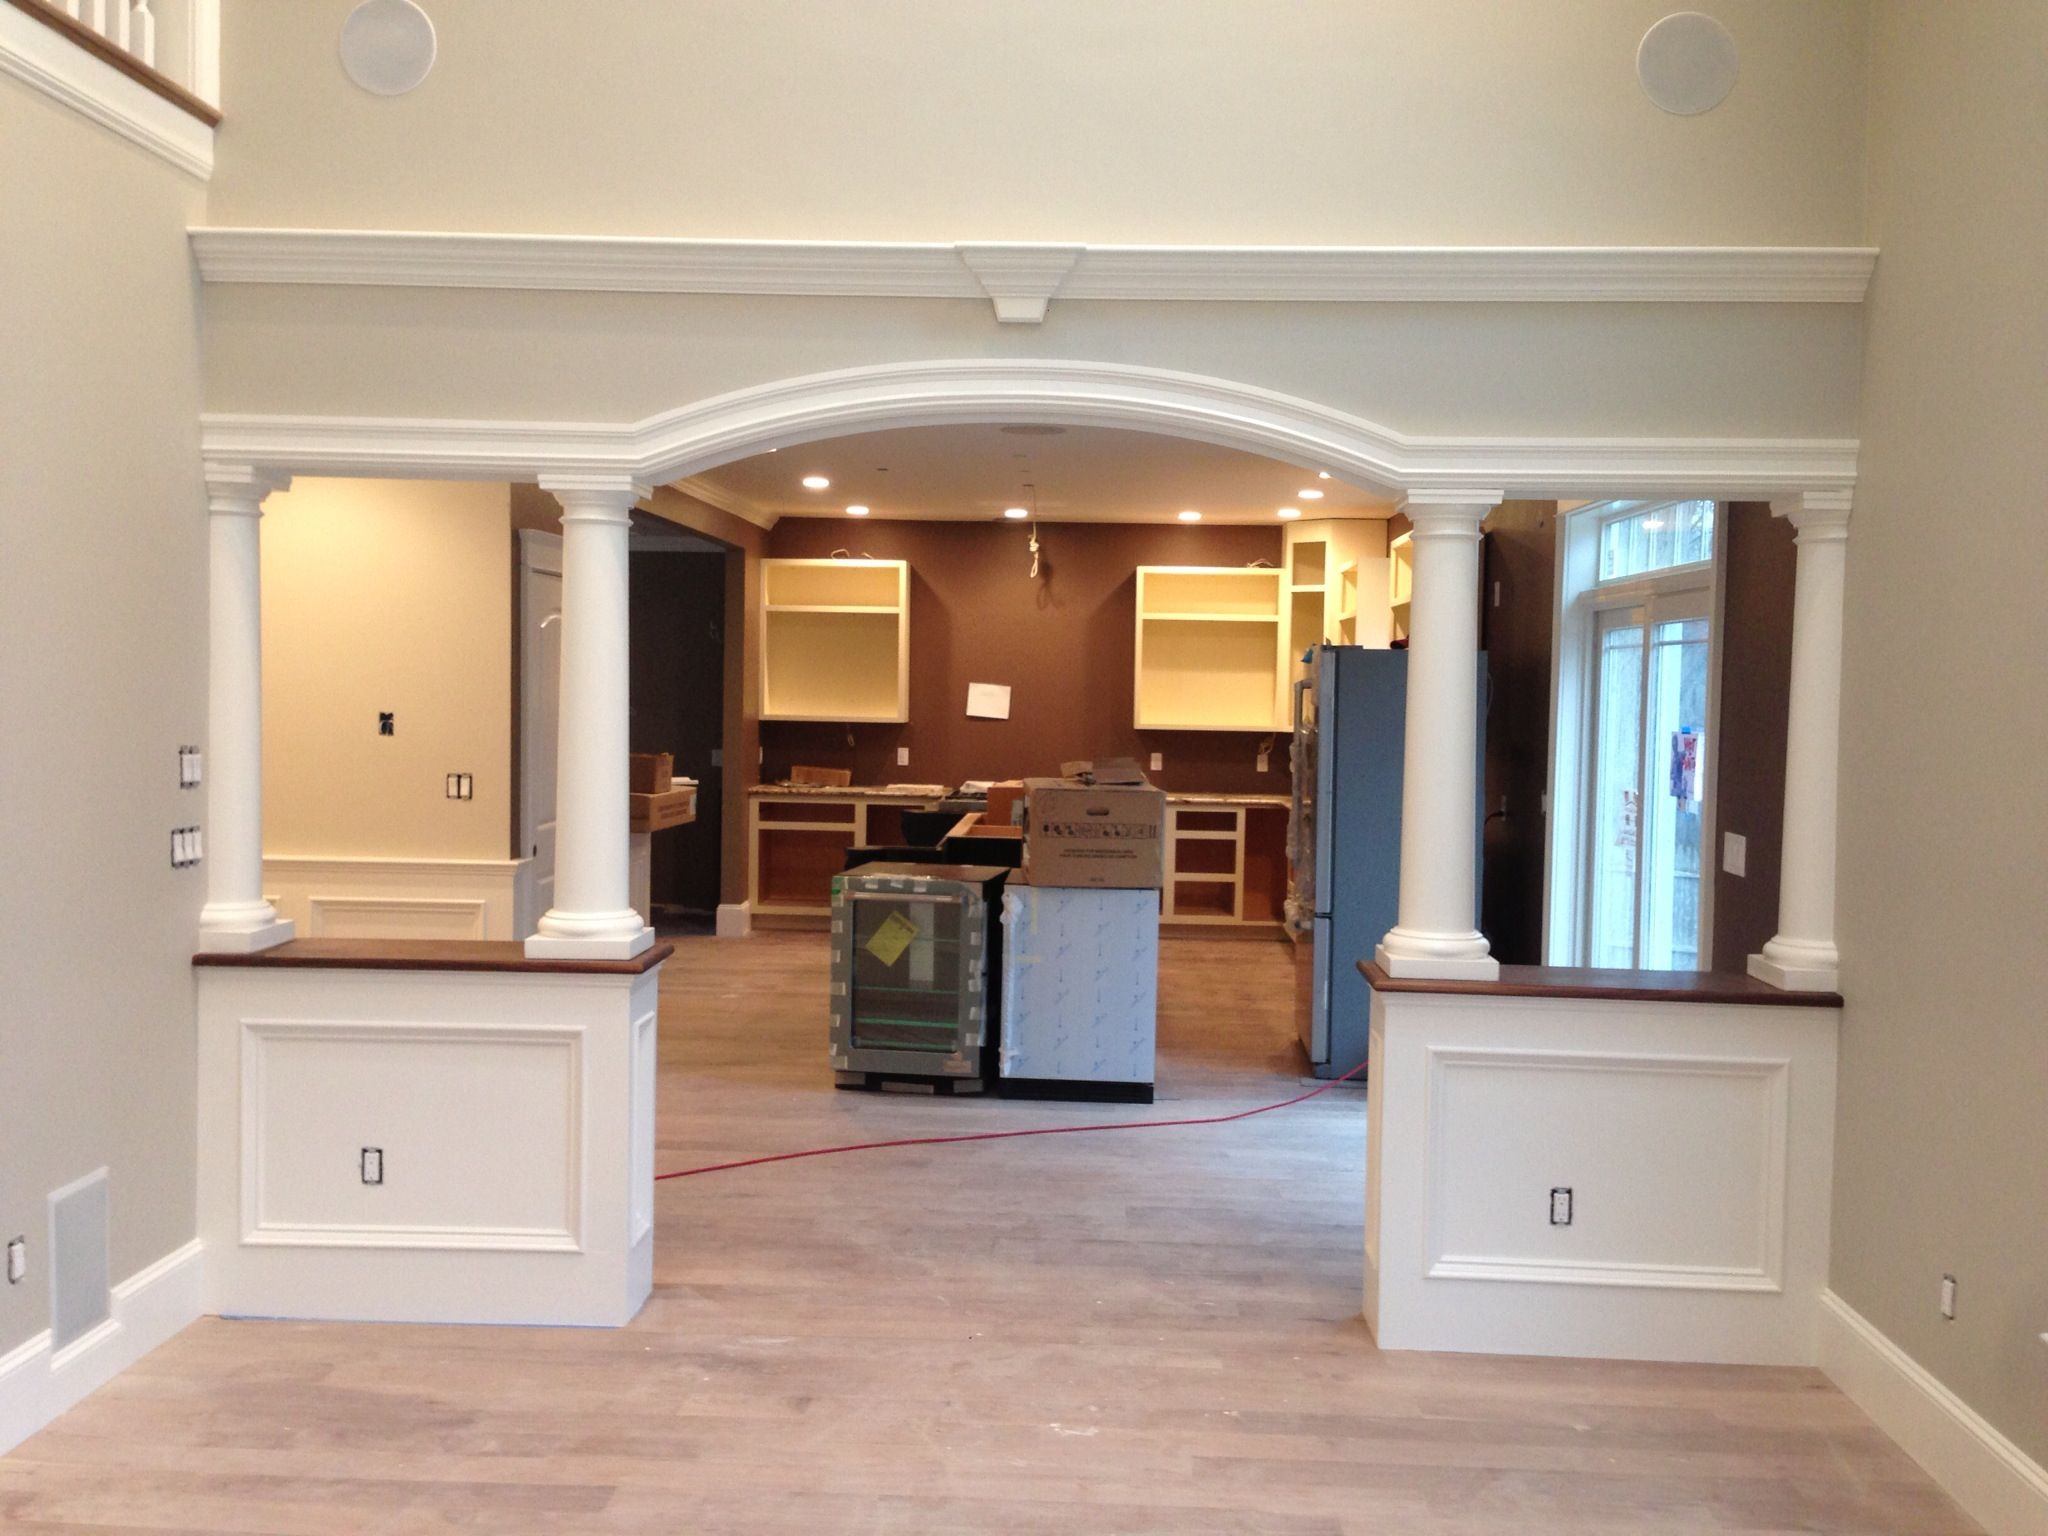 Half Wall Room Dividers Arched Opening With Walnut Half Walls And Columns